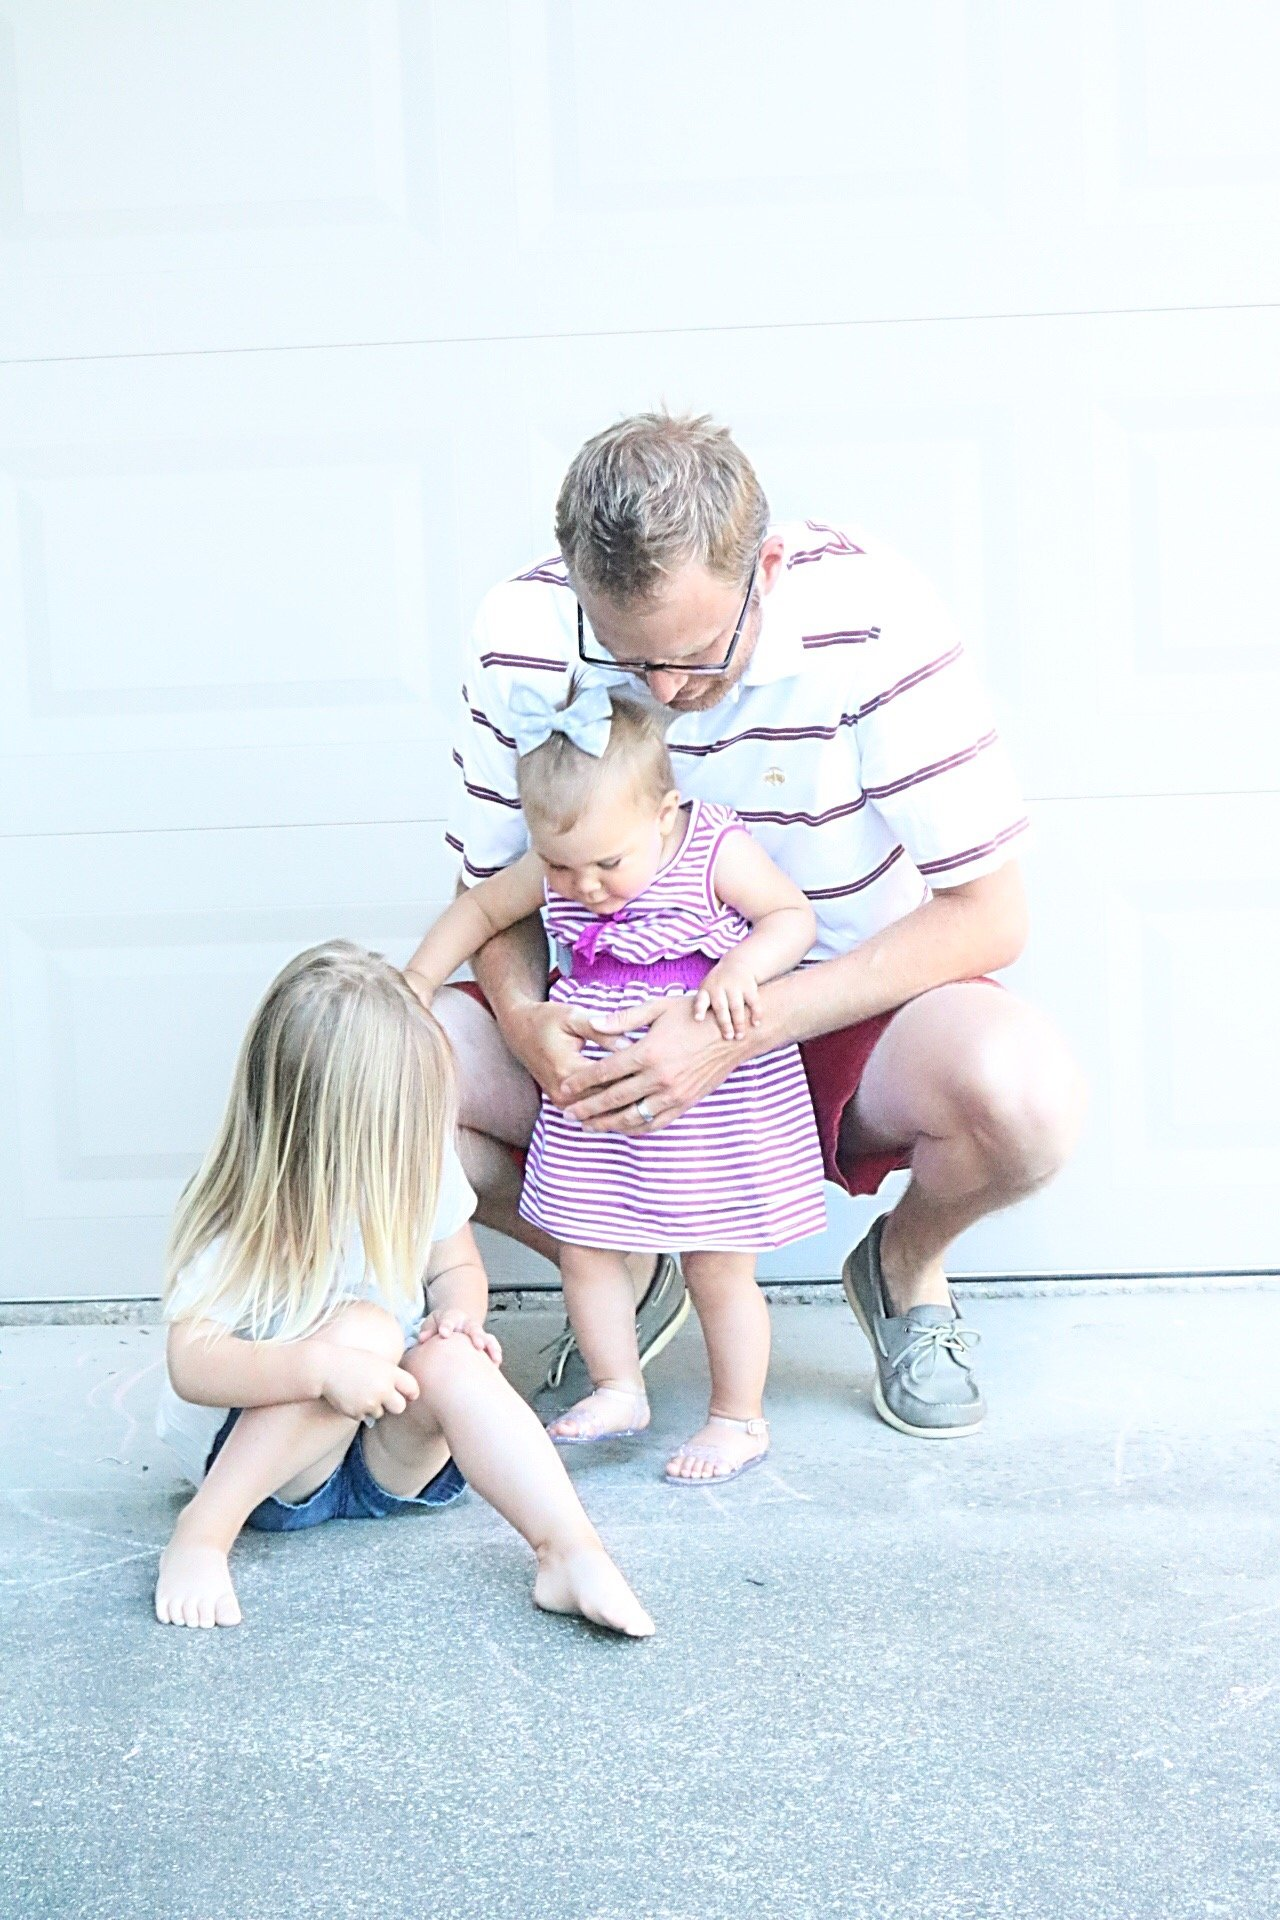 Importance of dads, dads influence on child, tips for being a good dad, dad bonding with child, how to bond with your child, tips for parenting